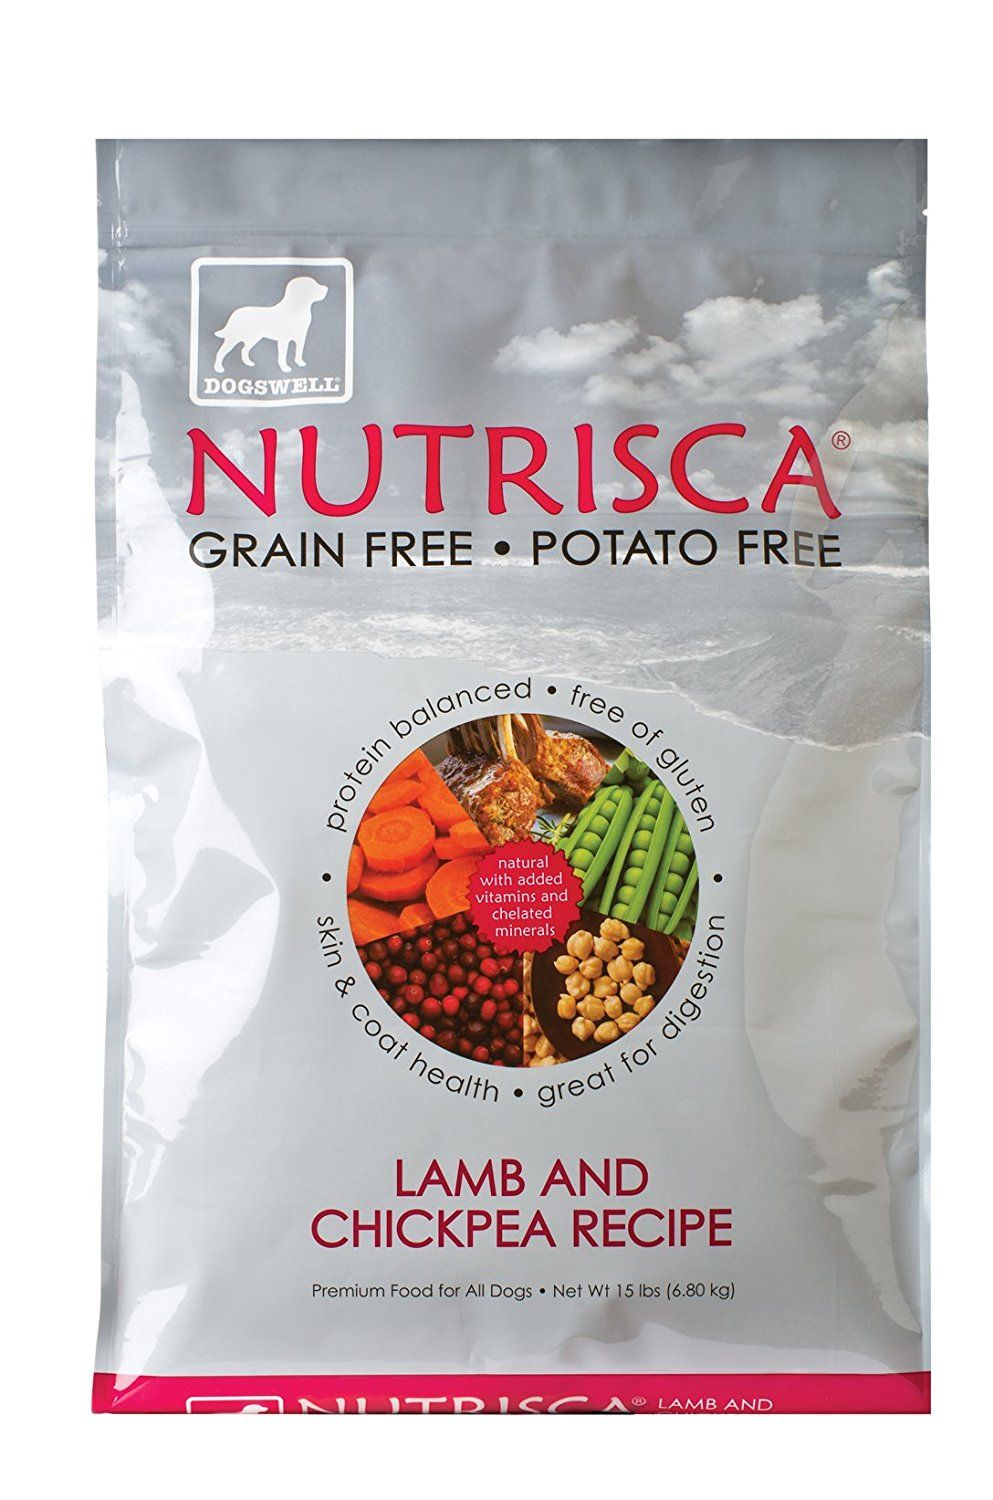 Dogswell Nutrisca Dog Food Lamb And Chickpea 15 Pound Package